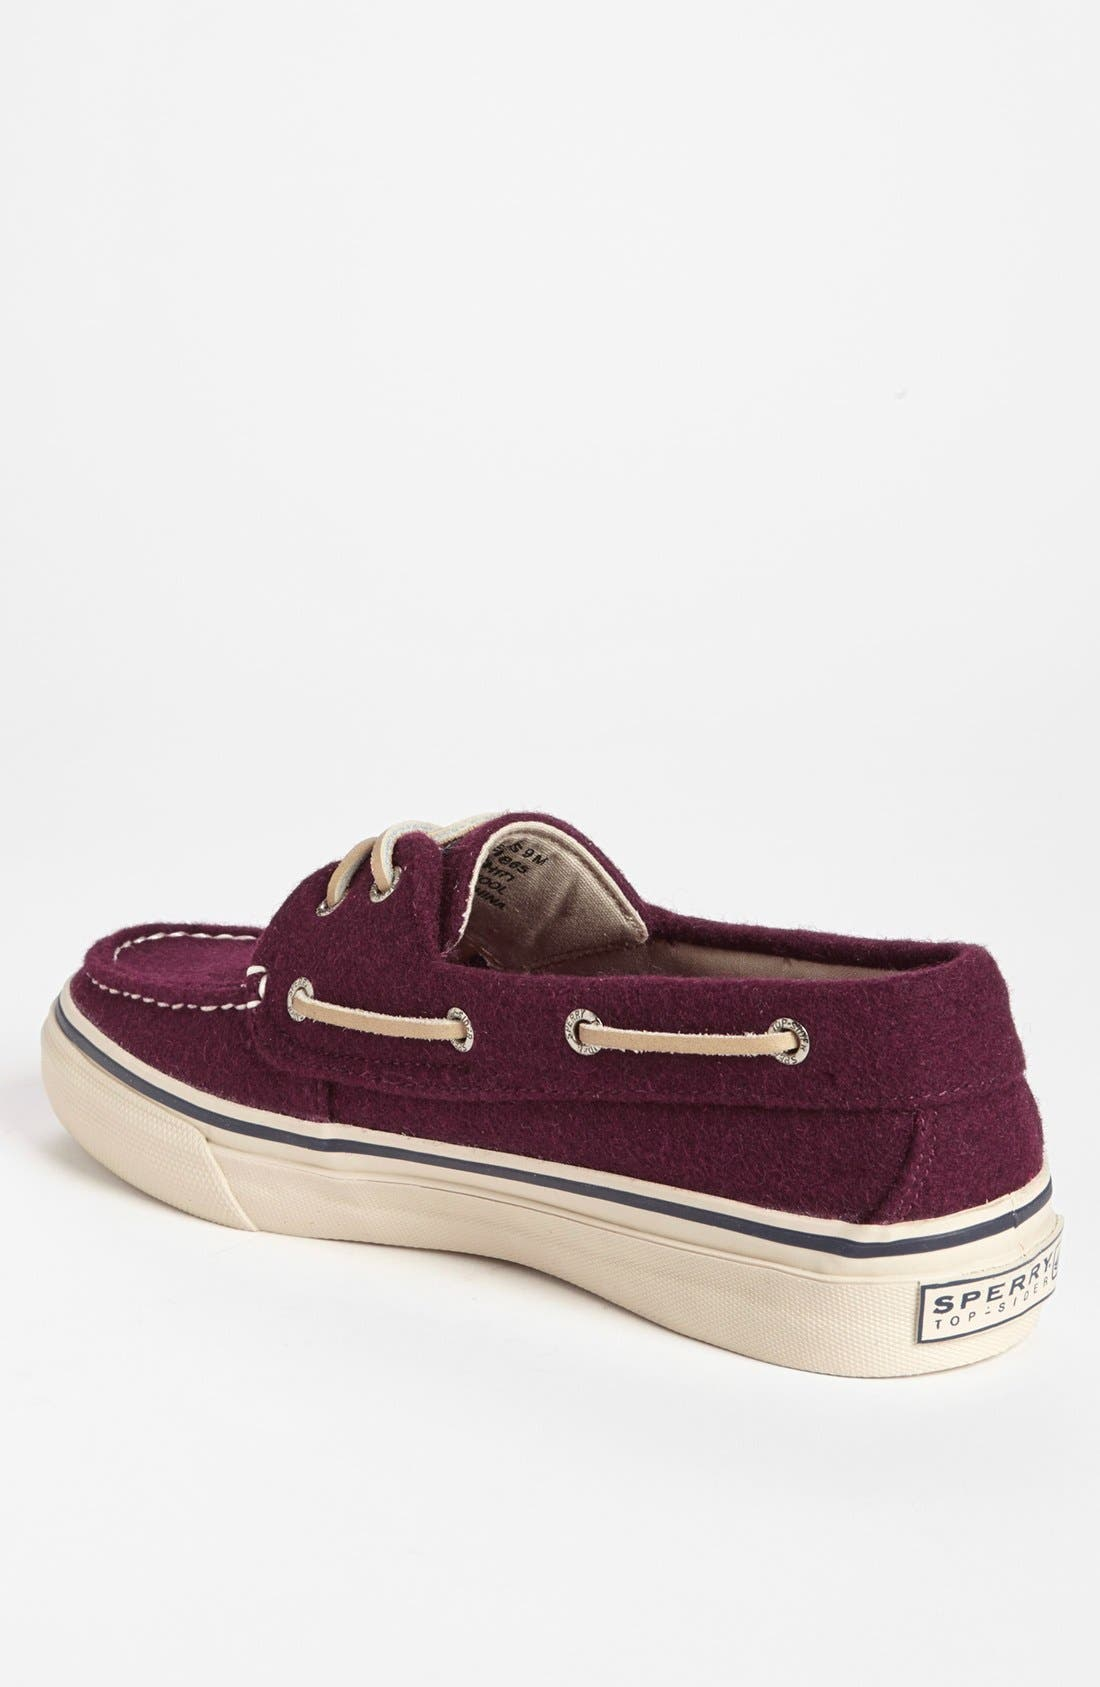 Alternate Image 2  - Sperry Top-Sider® 'Bahama' Wool Boat Shoe